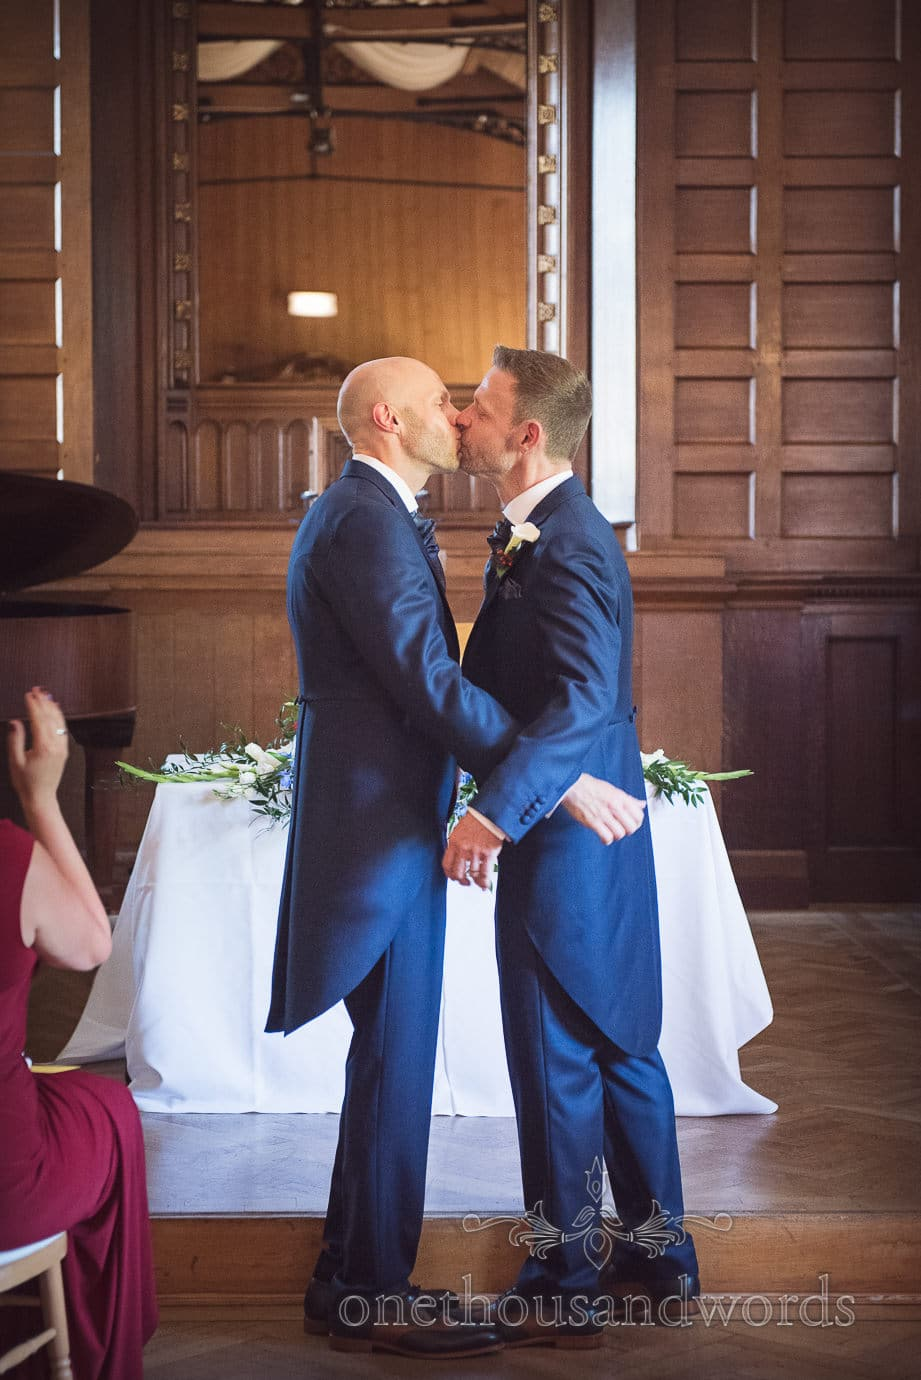 Gay wedding couple in blue wedding suits kiss at Purbeck House Hotel, Swanage